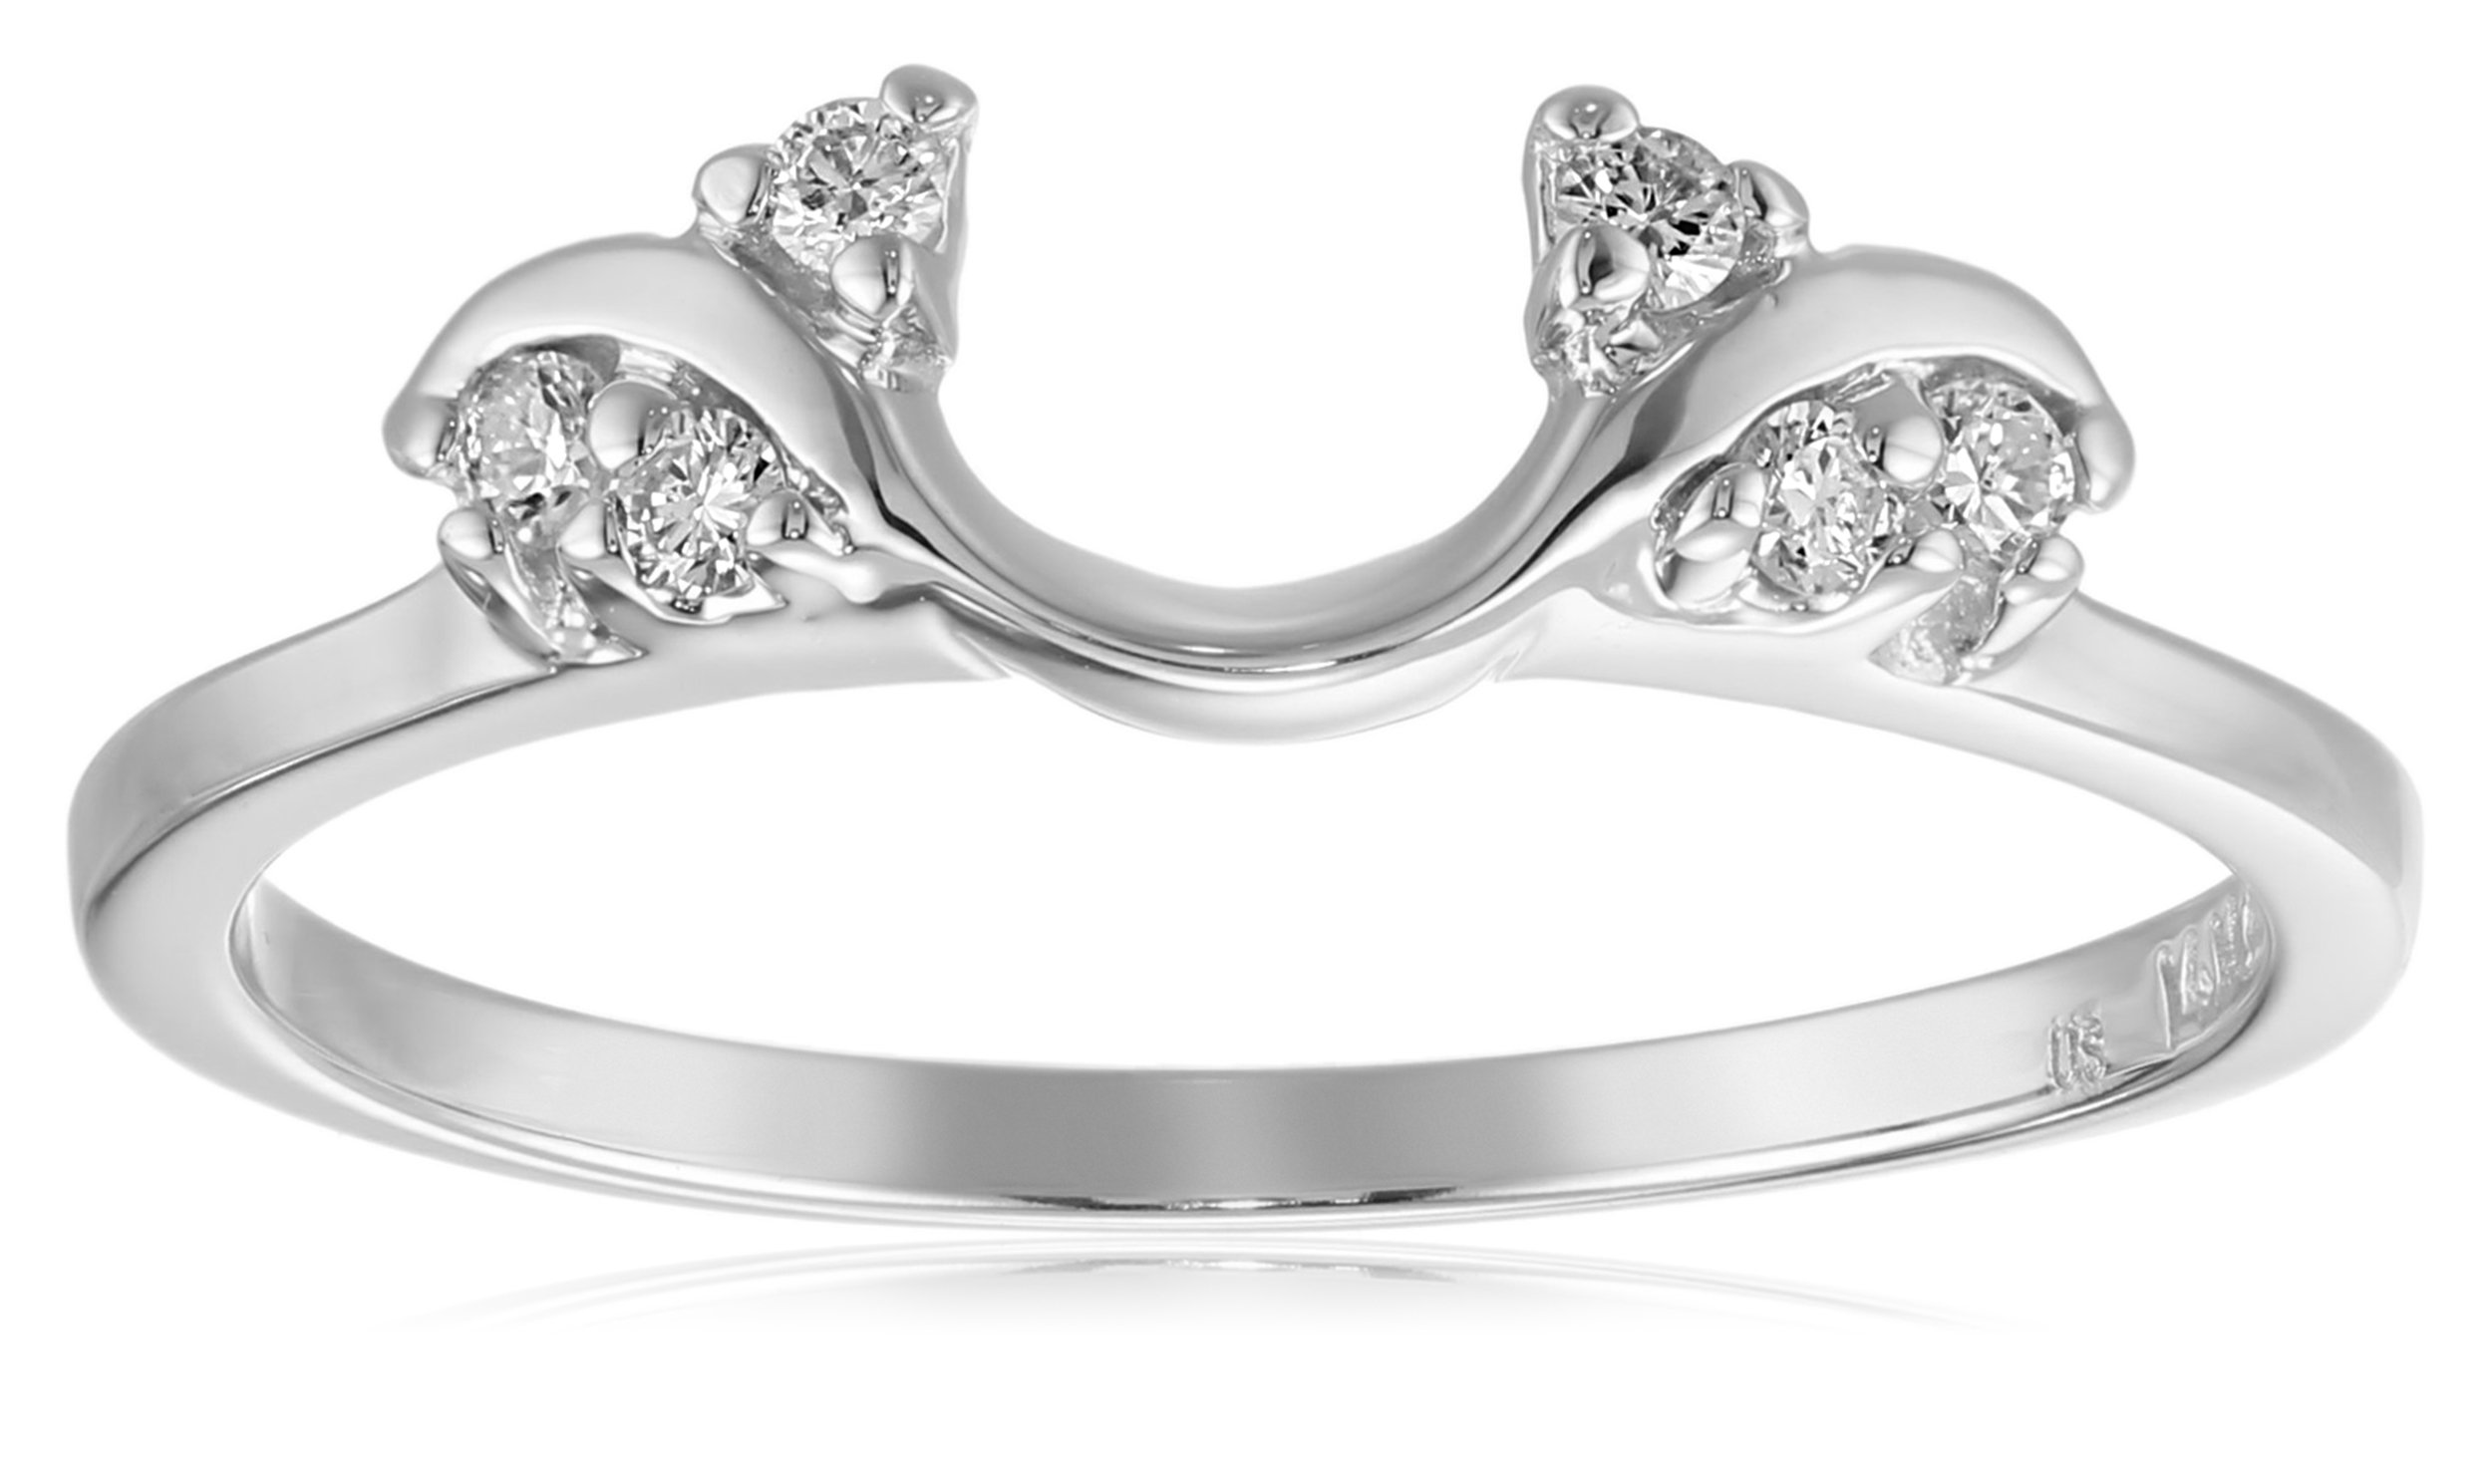 14k White Gold Round Diamond Solitaire Engagement Ring Enhancer (1/8 carat, H-I Color, I1-I2 Clarity), Size 7